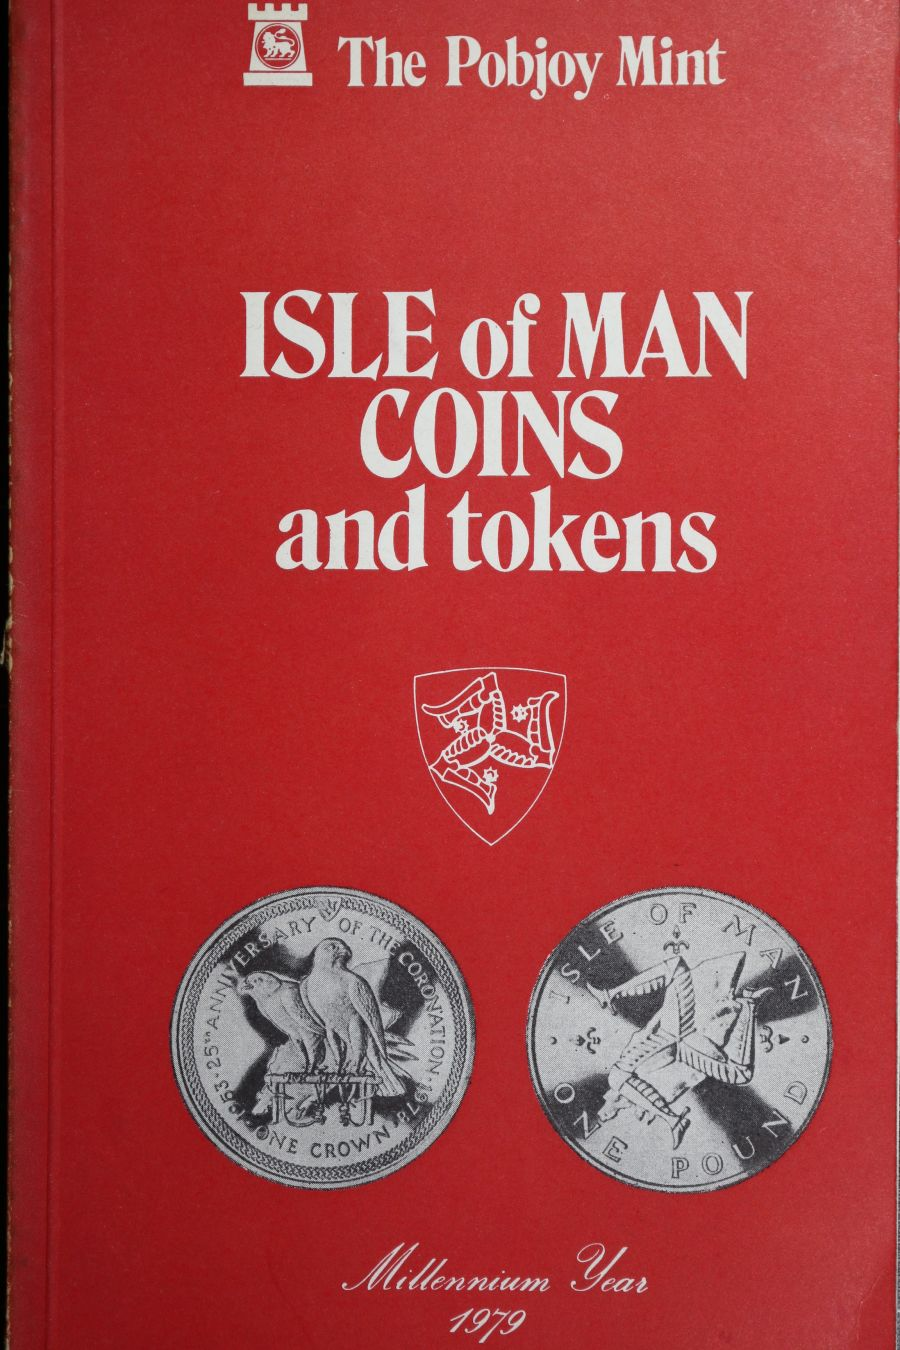 Isle of Man coins and tokens, The Pobjoy Mint, Millenium year 1979